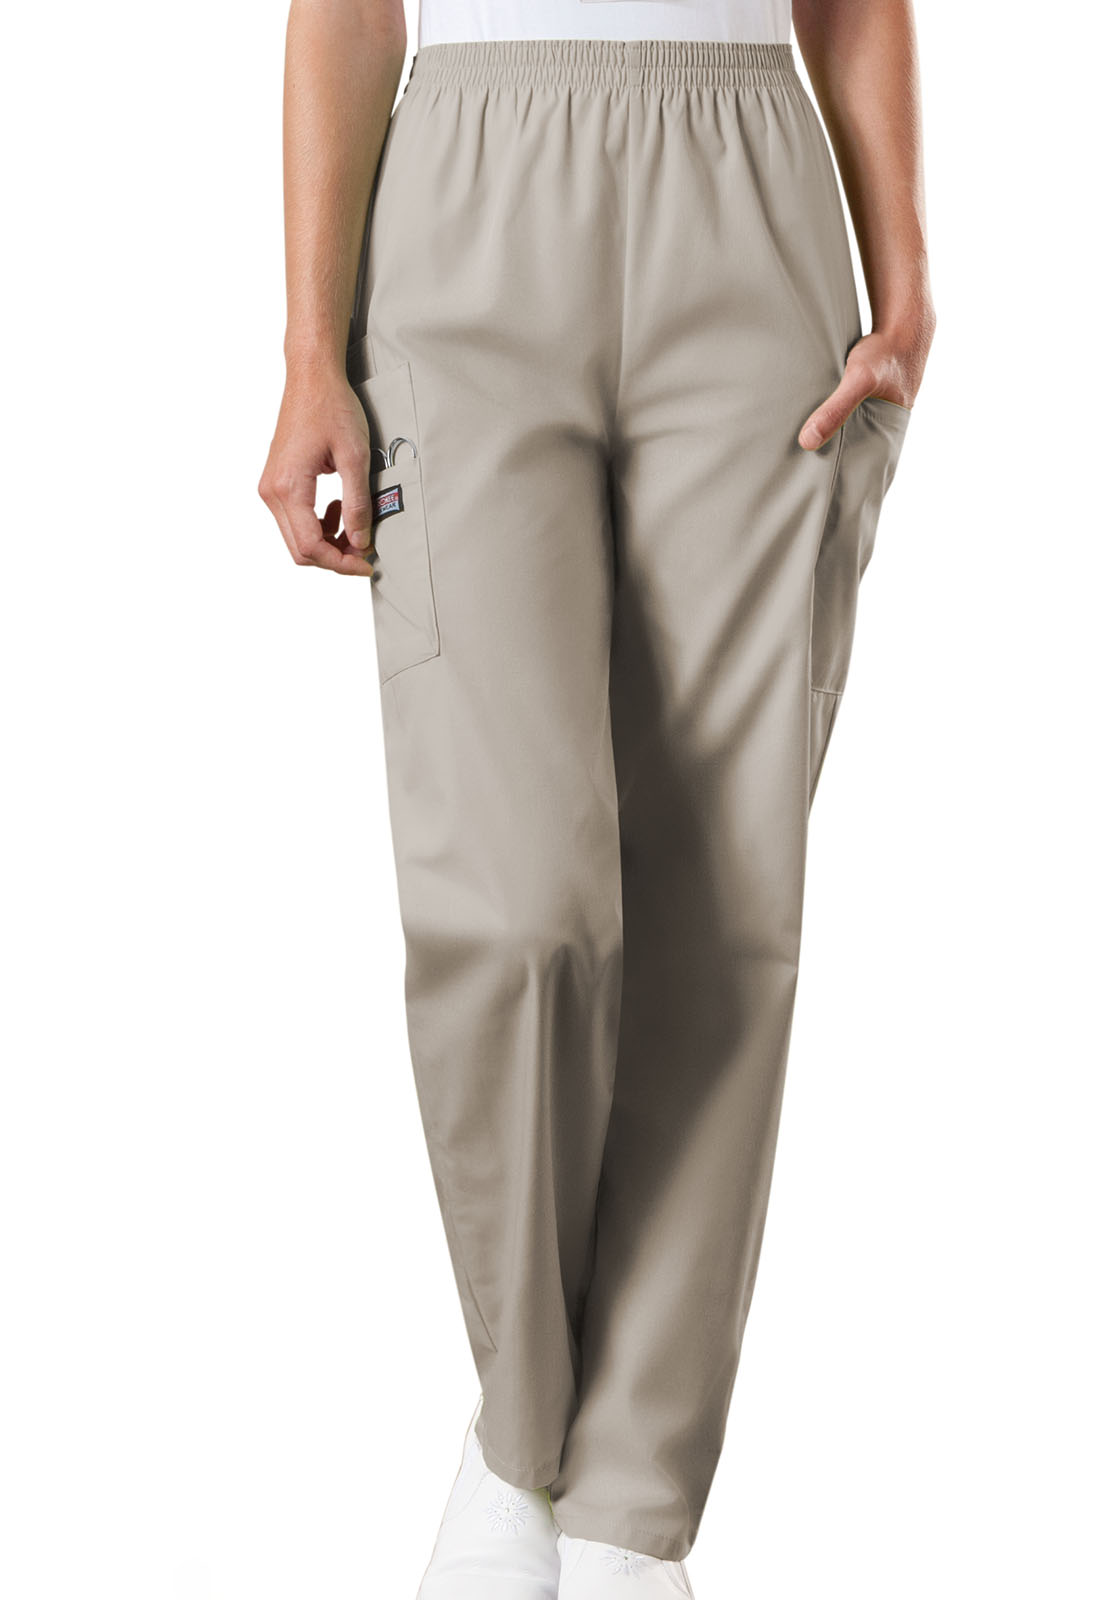 Natural Rise Tapered Pull-On Cargo Pant